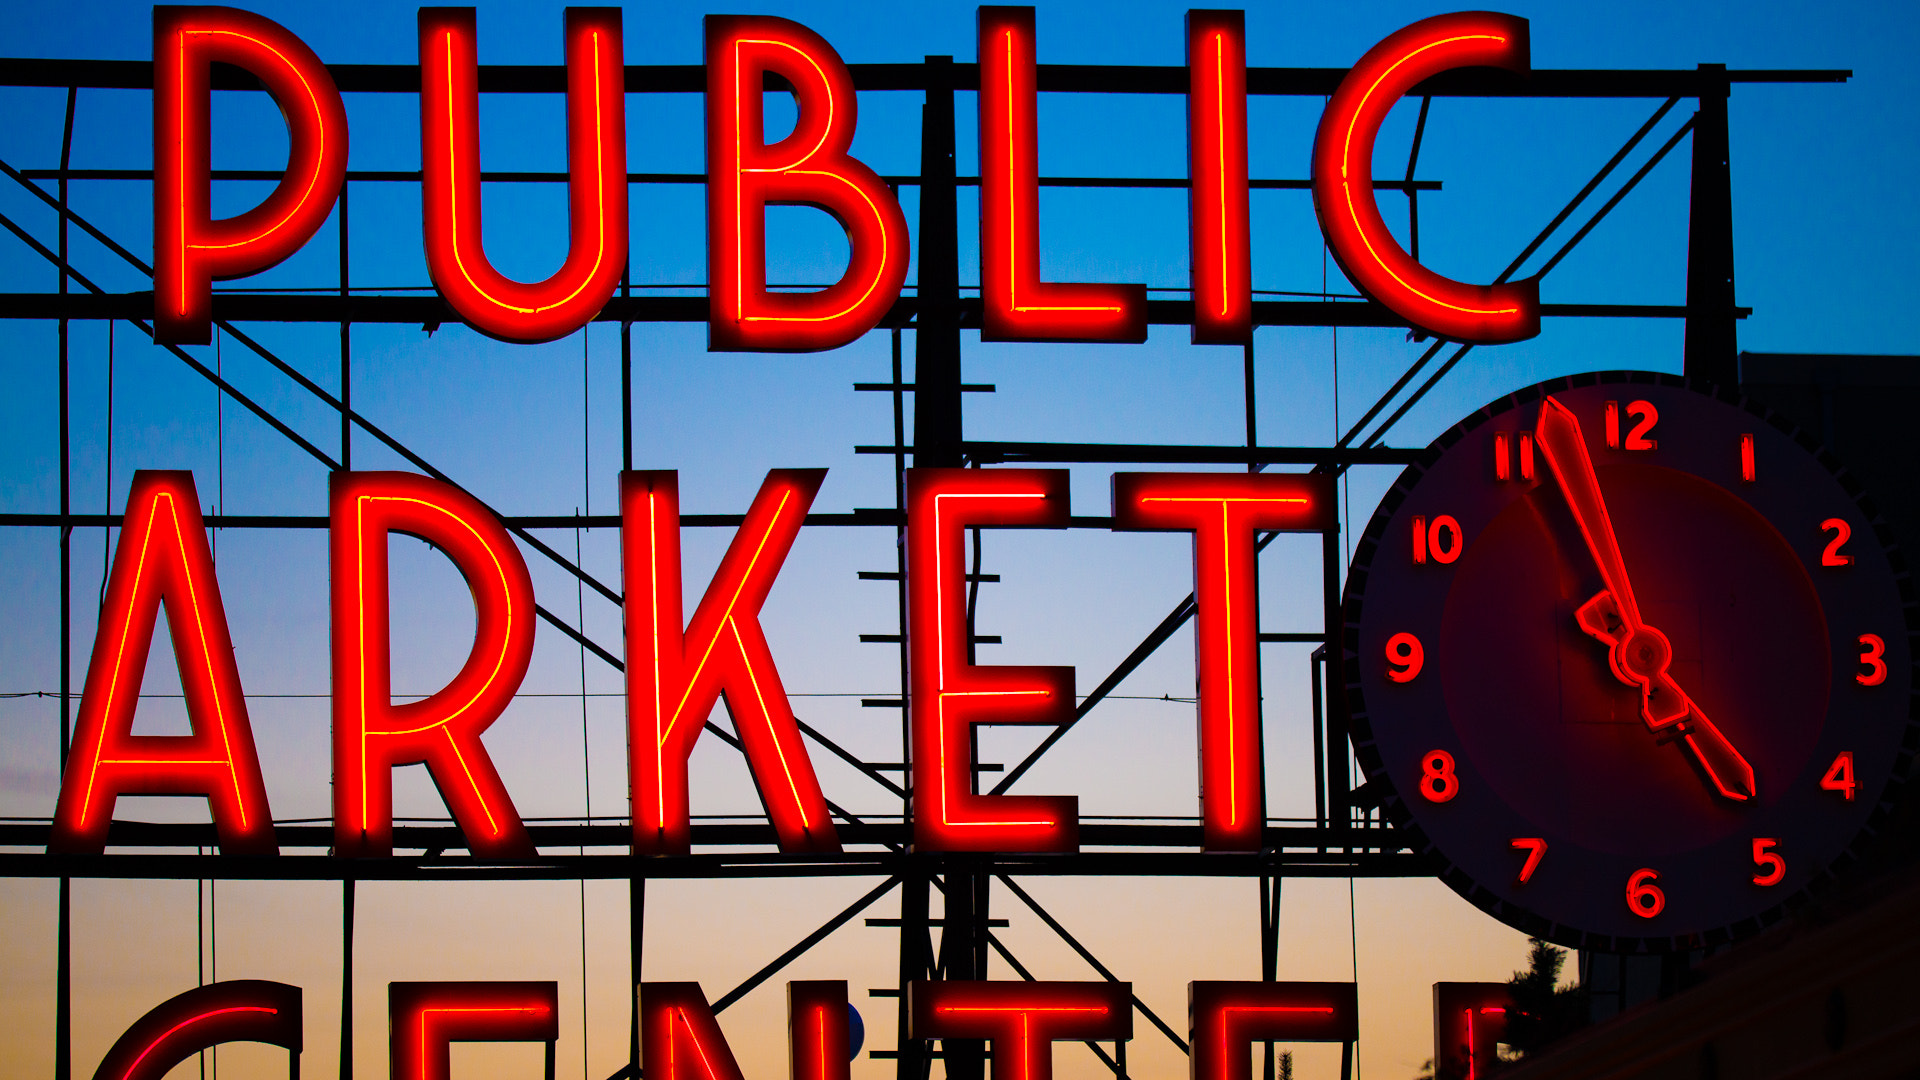 Photograph Pike market sign - 2 by Abishek Murali Mohan on 500px